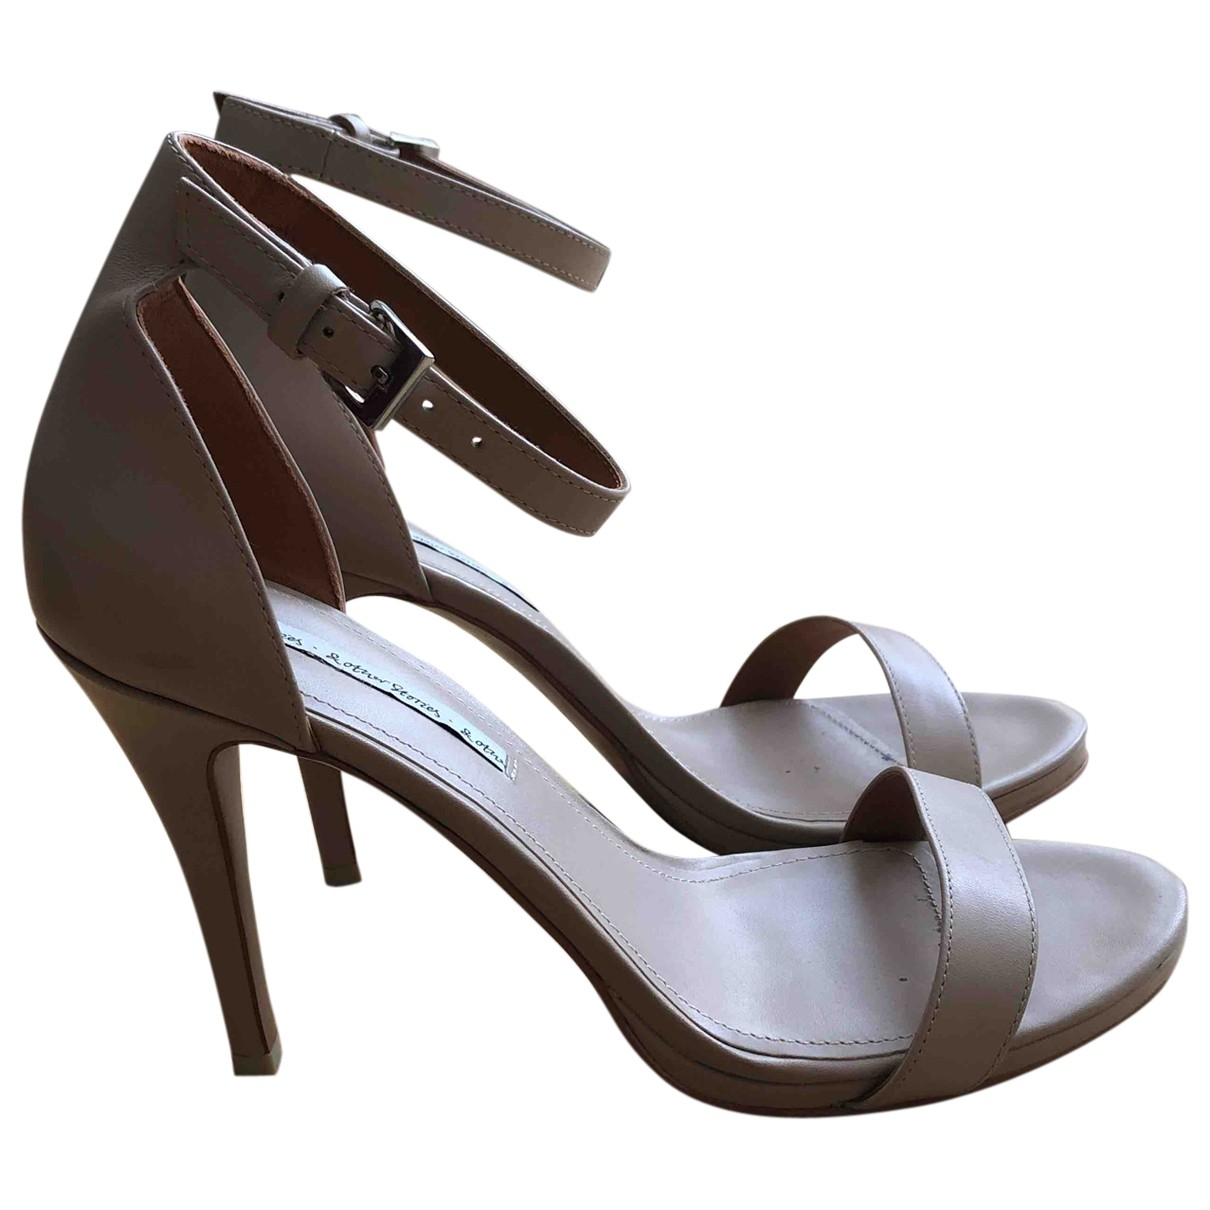 & Stories \N Beige Leather Sandals for Women 41 EU